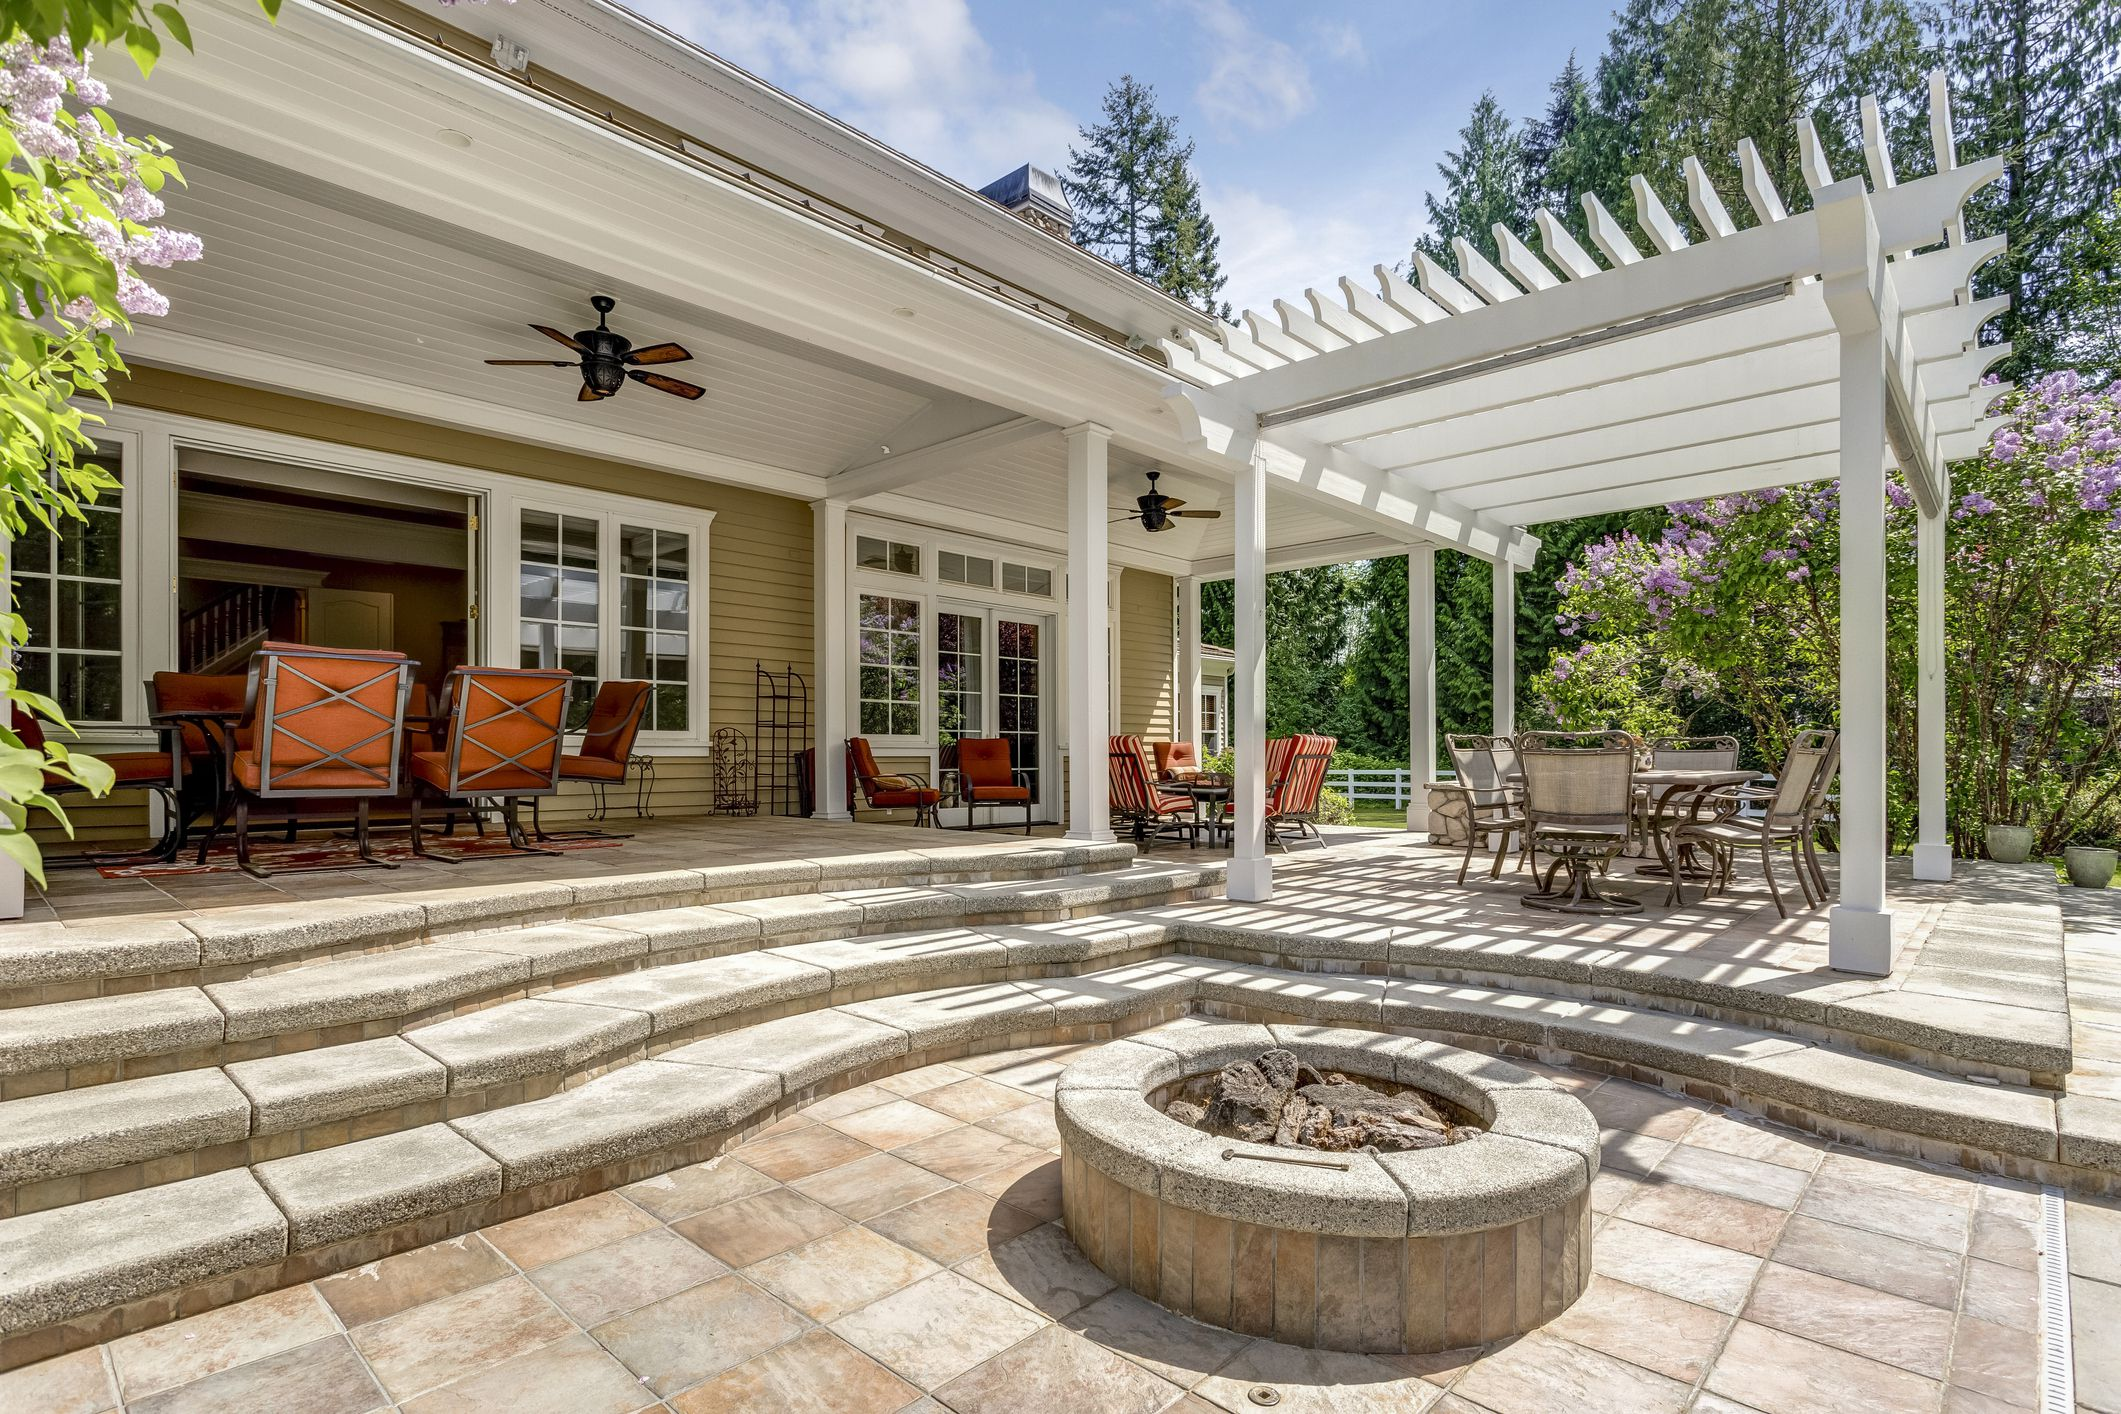 Lovely outdoor deck patio space with white dining pergola.